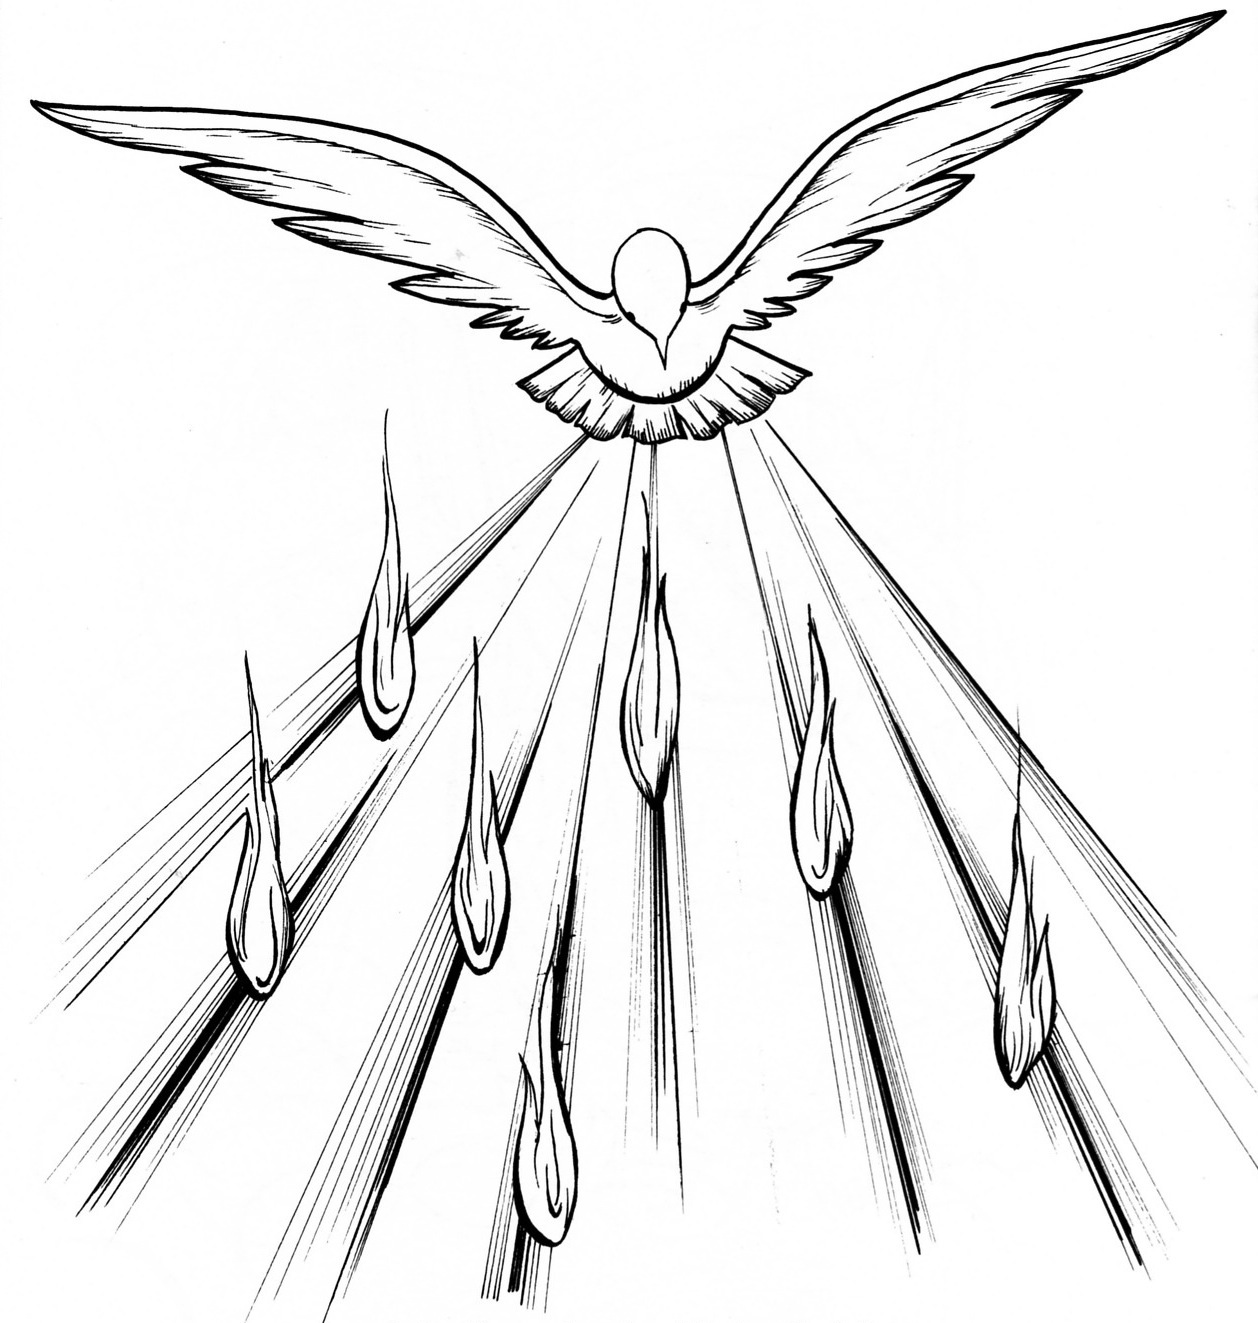 Bp Blogspot Com  Pentecost Tongues Of Fire   Dove And Tongues Of Fire